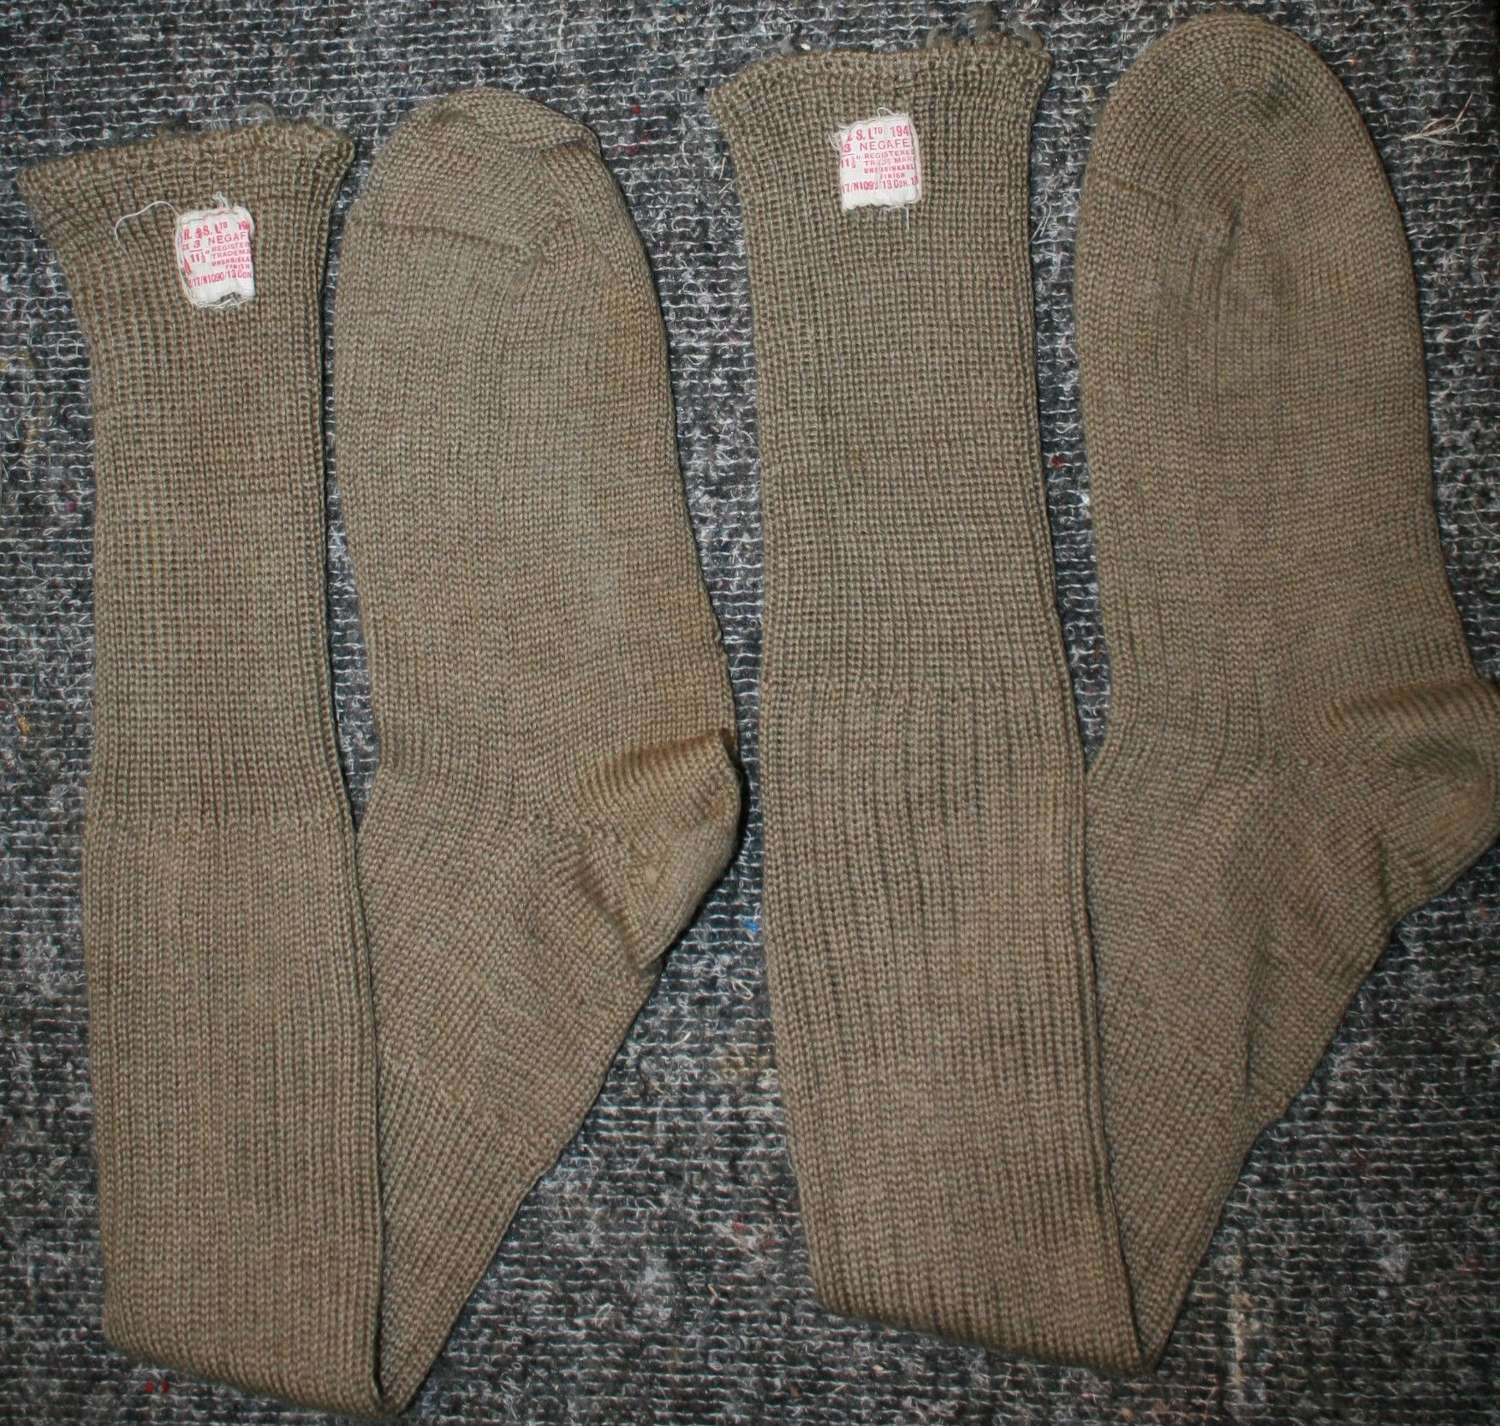 A PAIR OF KNEE LENGTH ARMY SOCK 1945 DATED